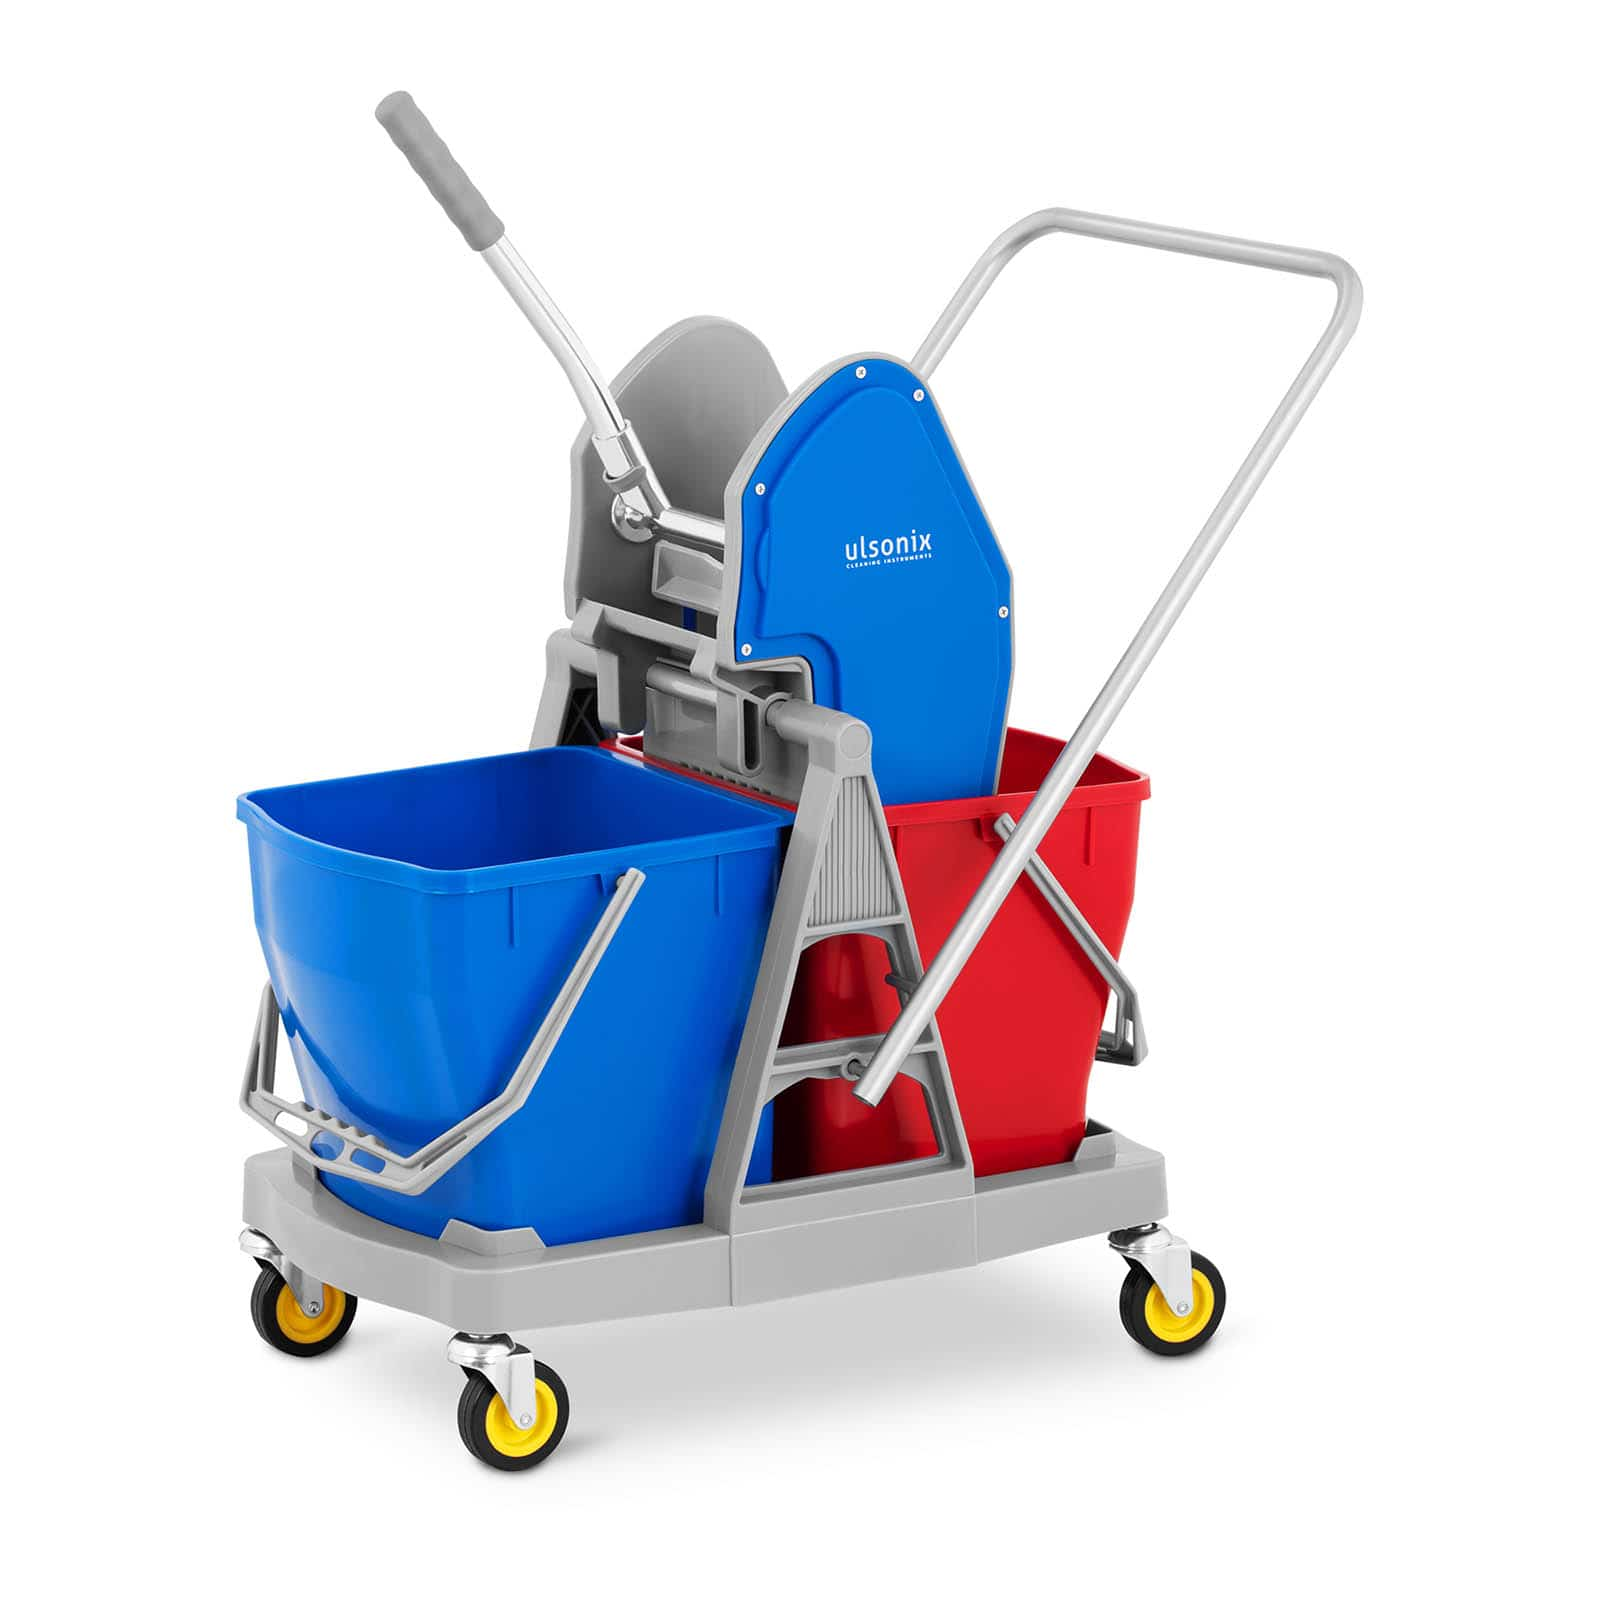 Industrial cleaning equipment and supplies